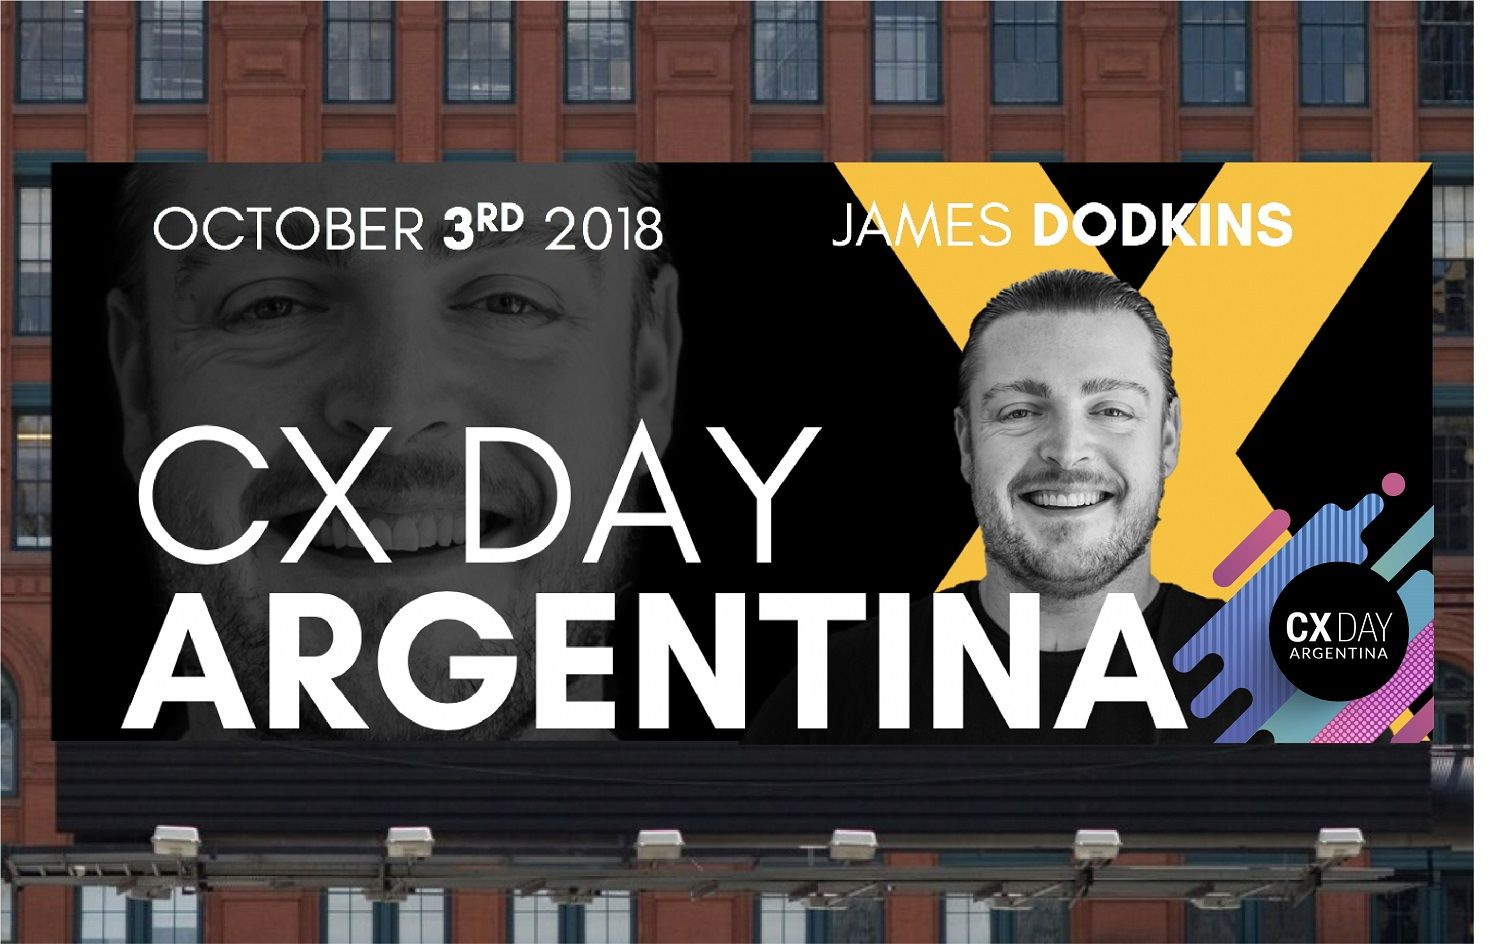 James Dodkins vendrá a Rockear al CX Day Argentina 2018